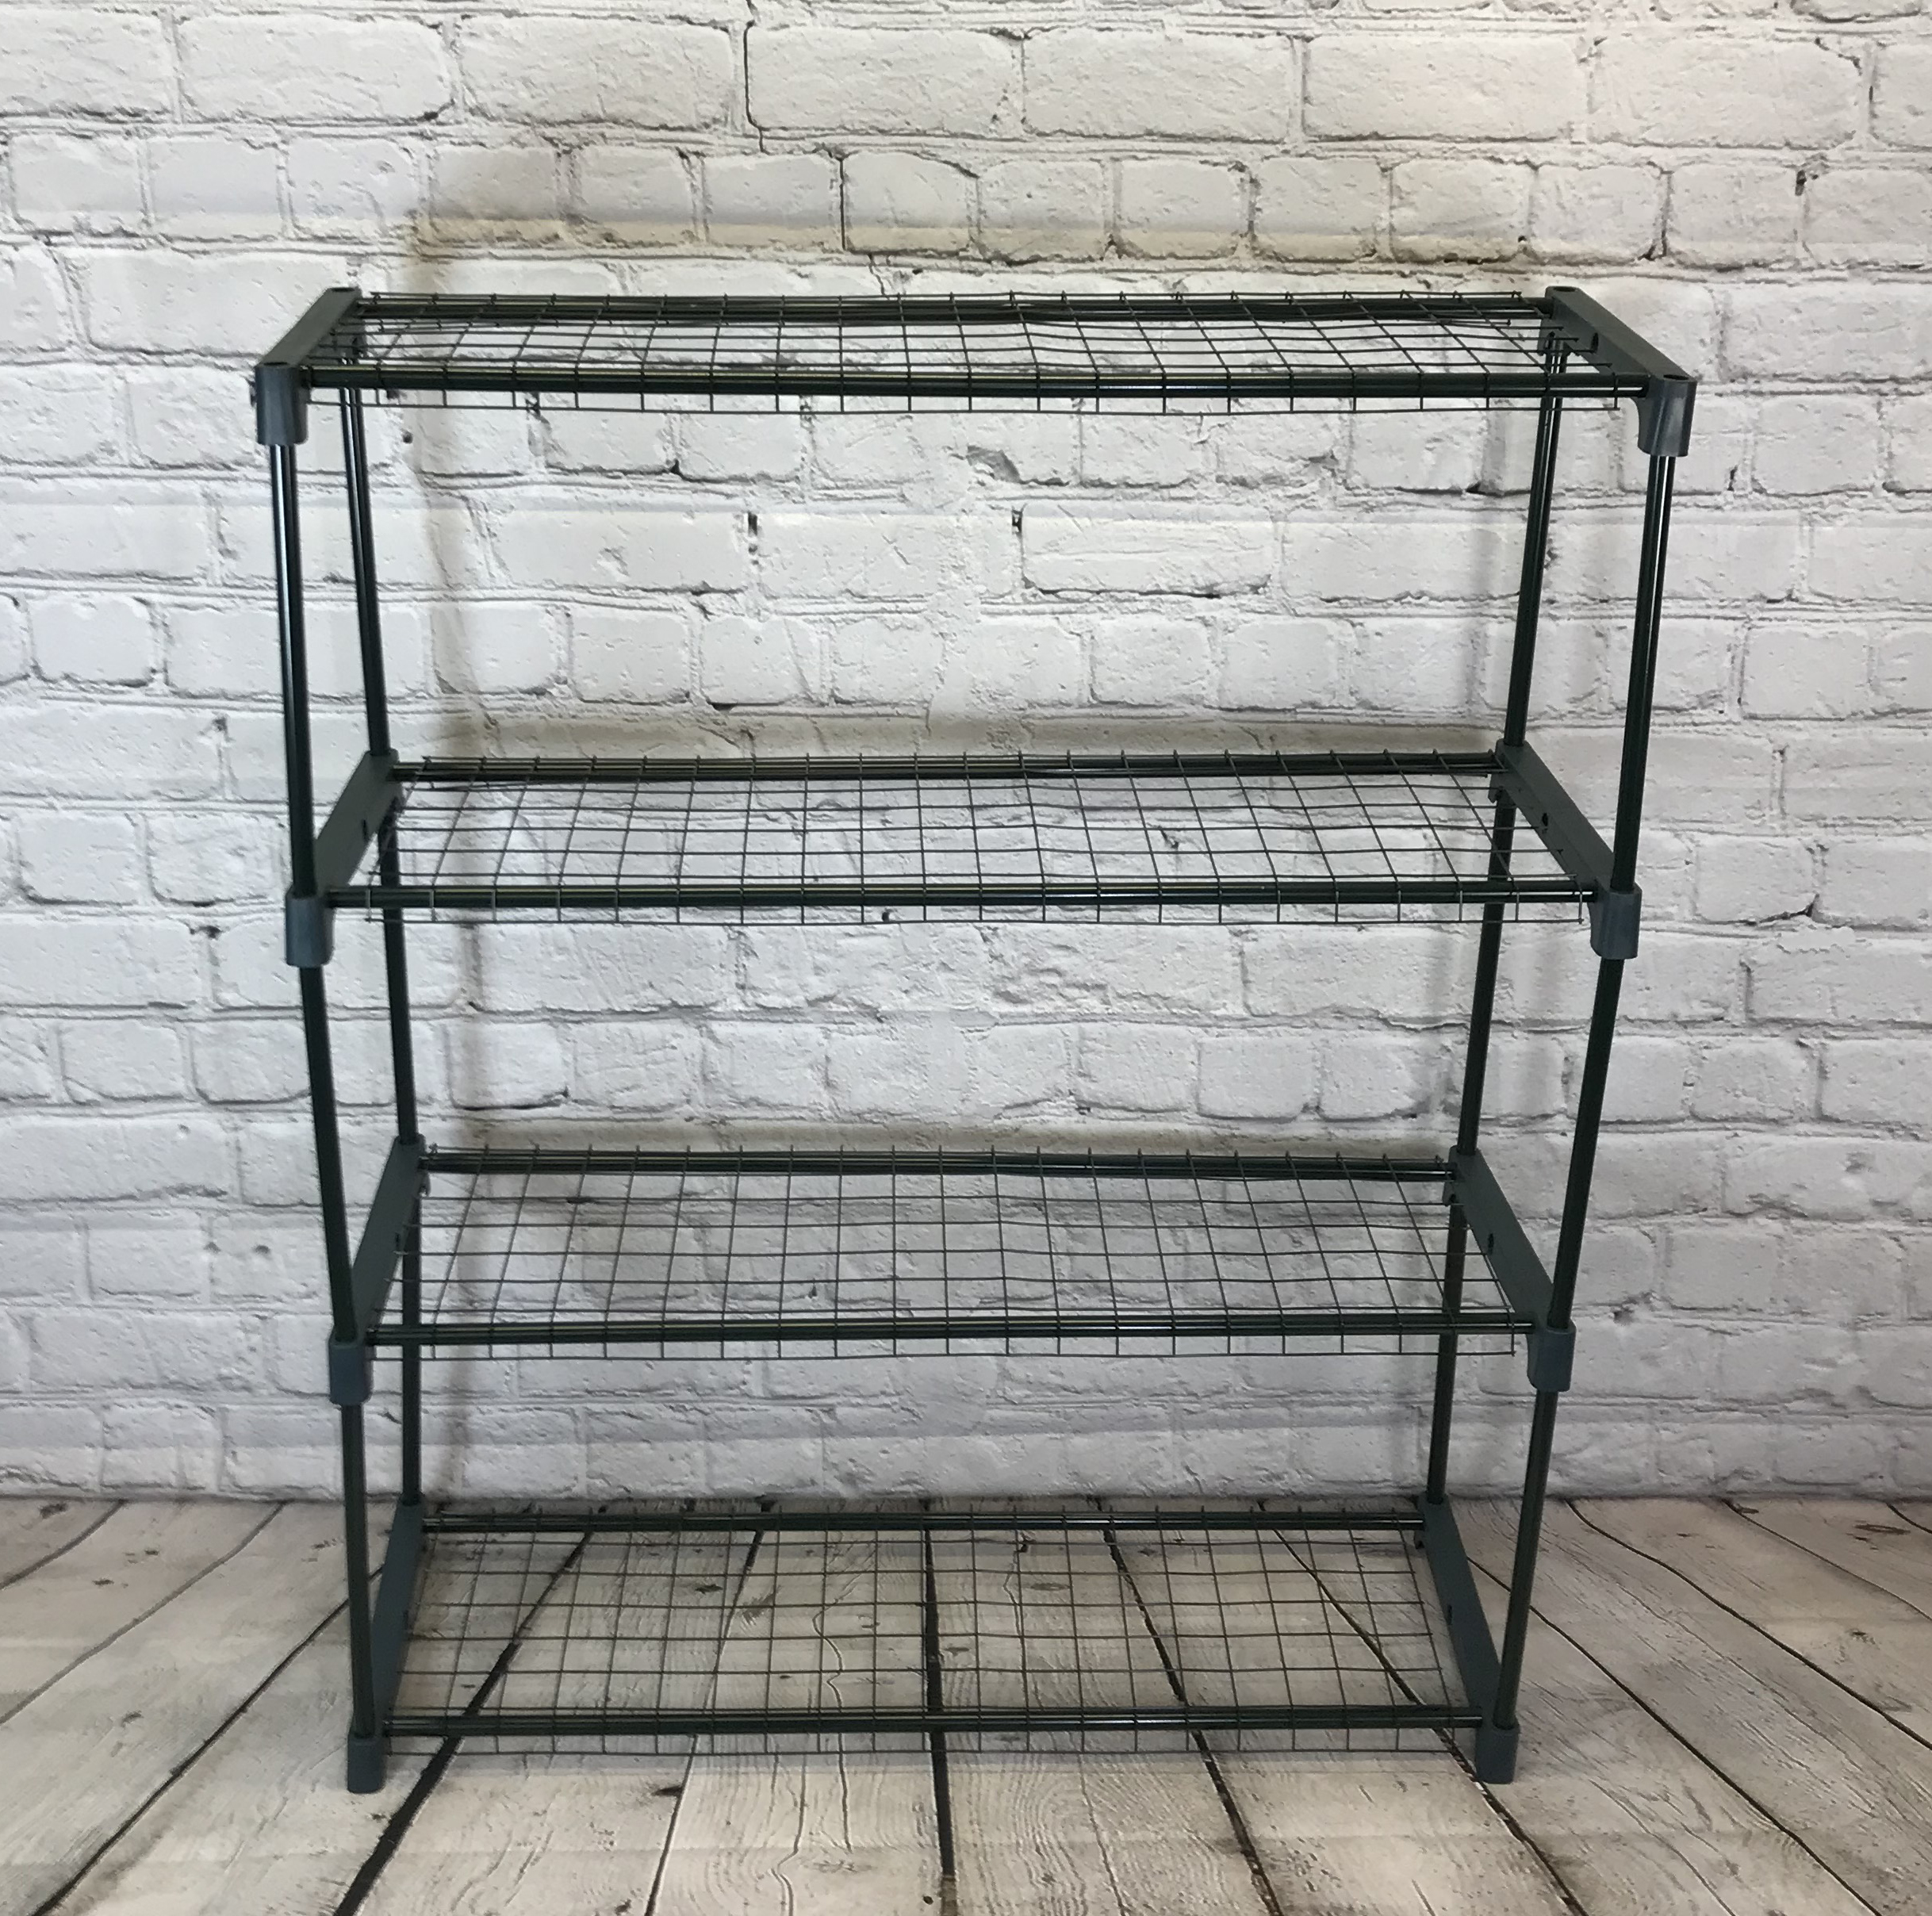 Garden Greenhouse Staging Shelving Racking Steel 4 Tier